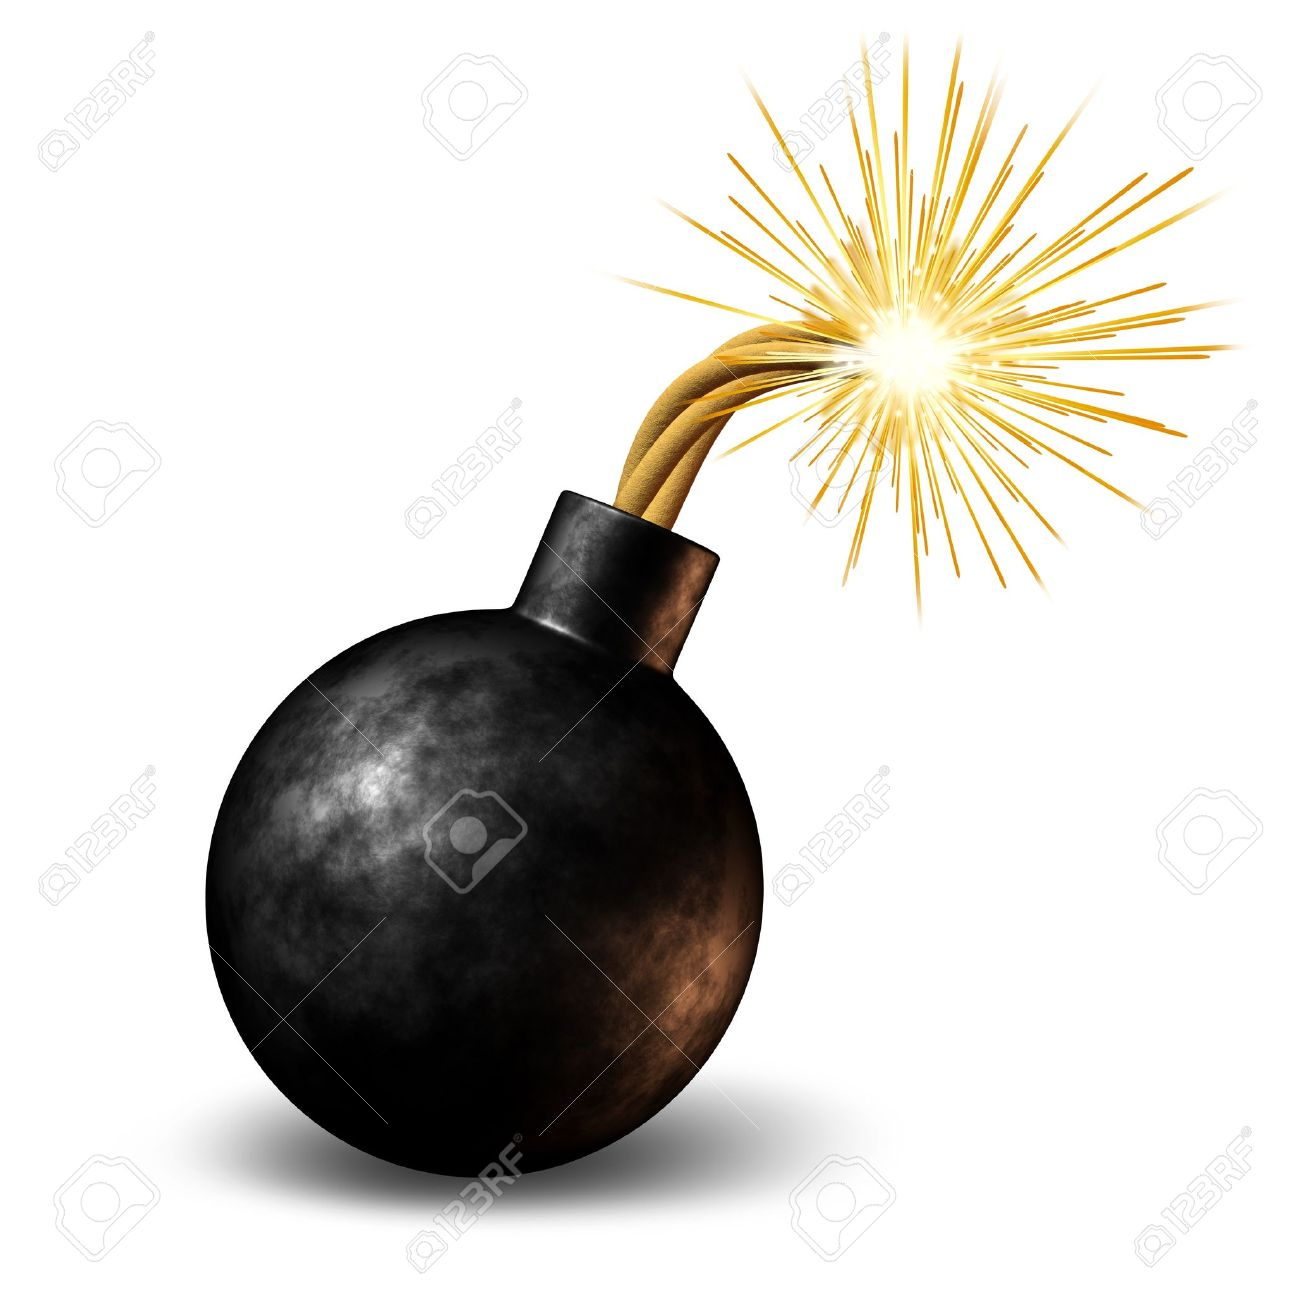 Bomb with lit burning fuse with fire sparks fealing the heat as a dangerous warning of an urgent deadline with an impending explosion warning on a white background. Stock Photo - 11840306